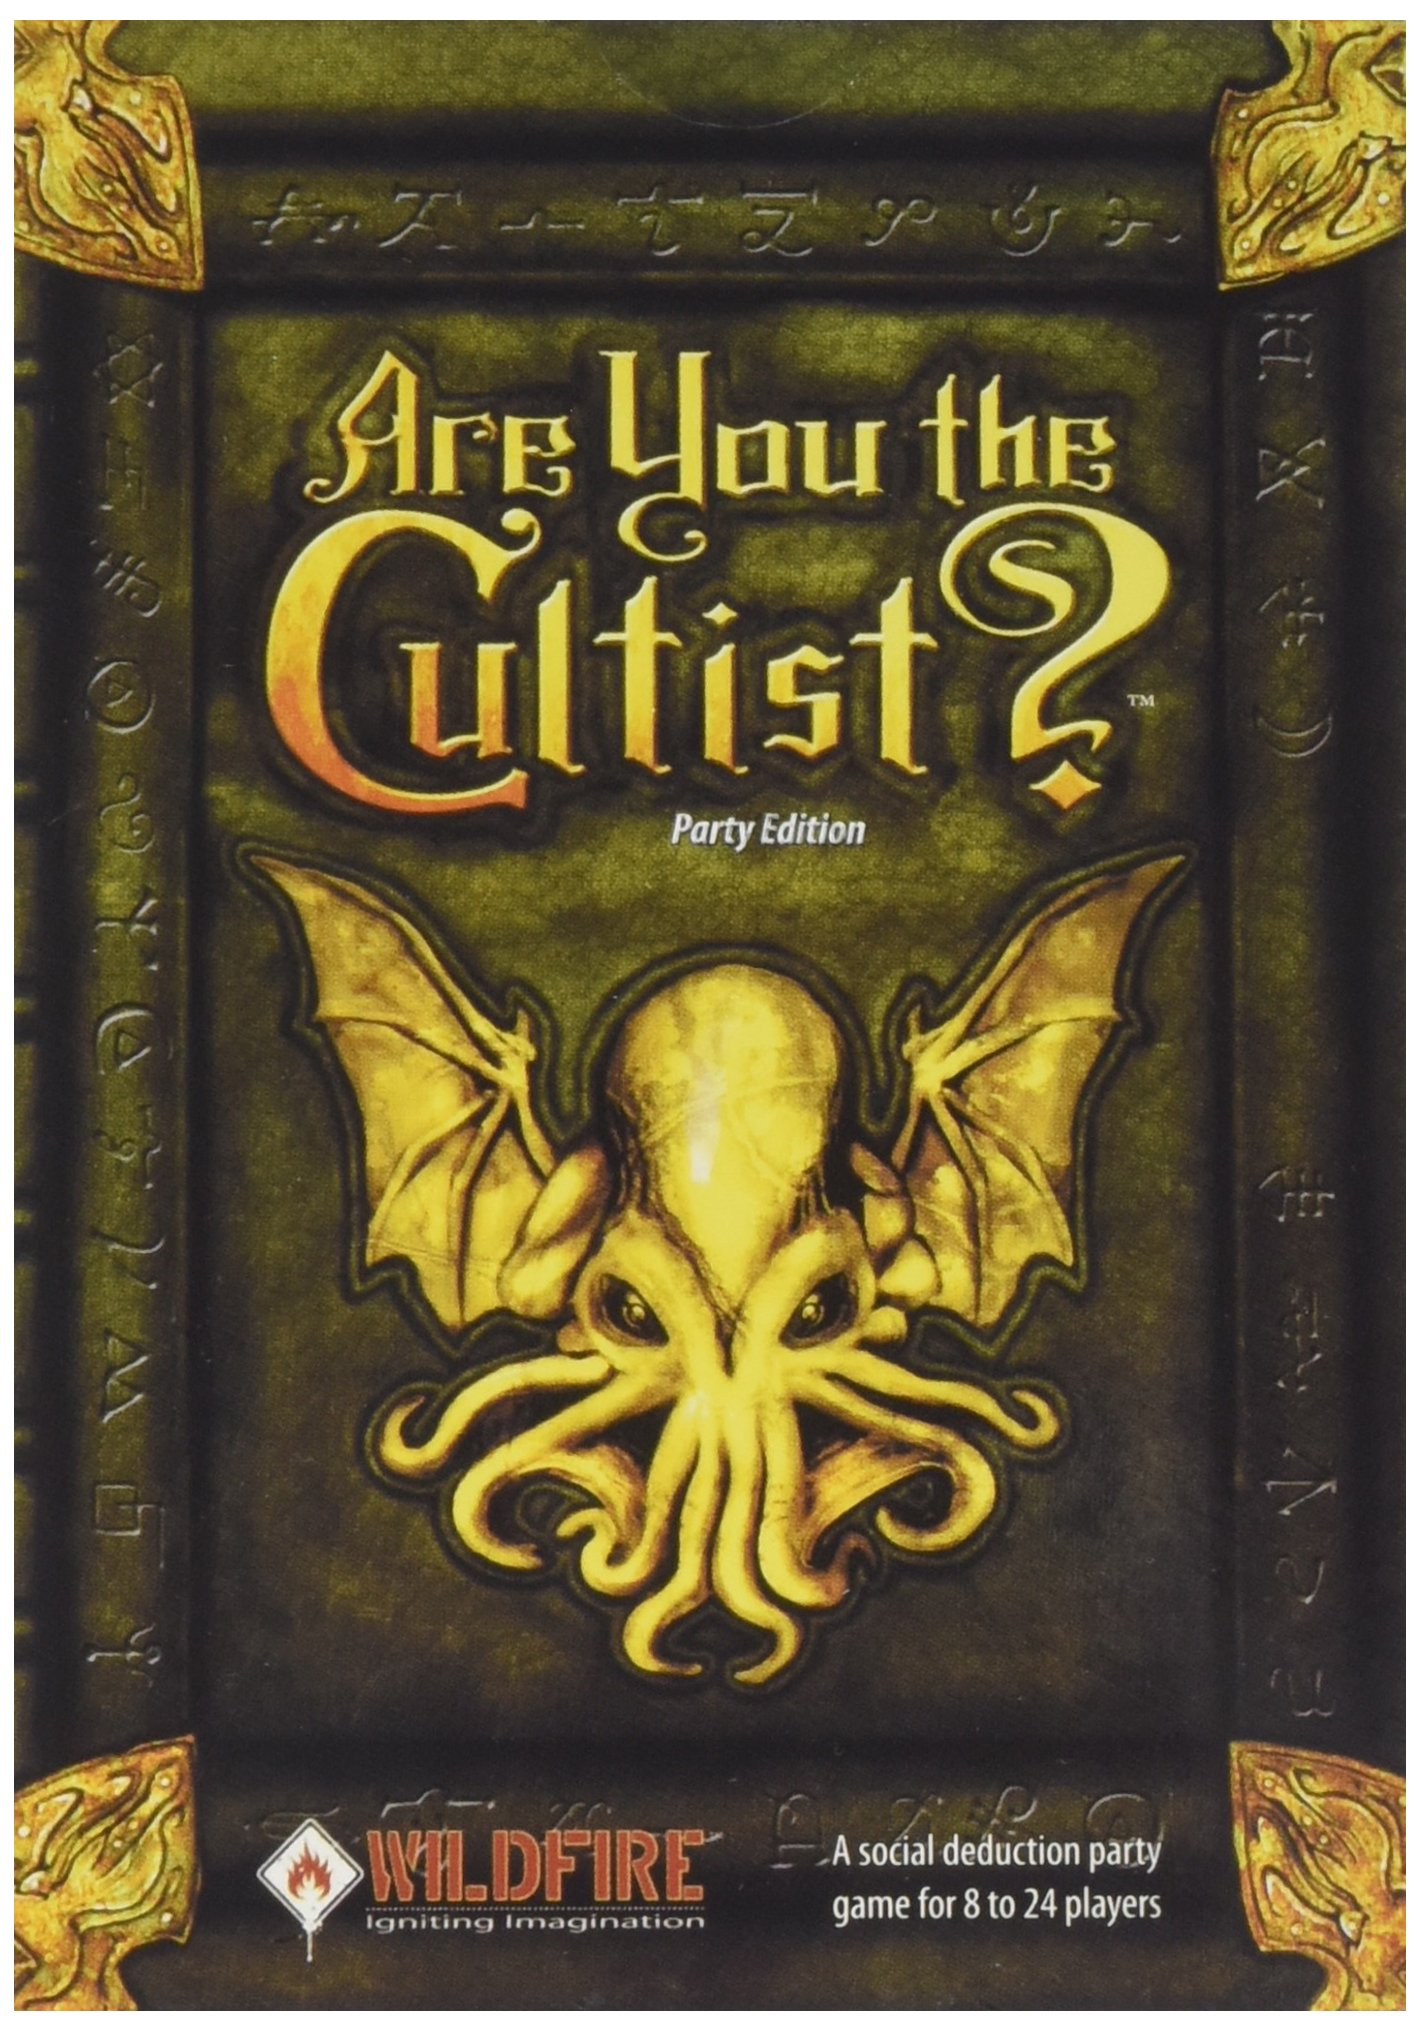 are You The Cultist Party Edition Board Game